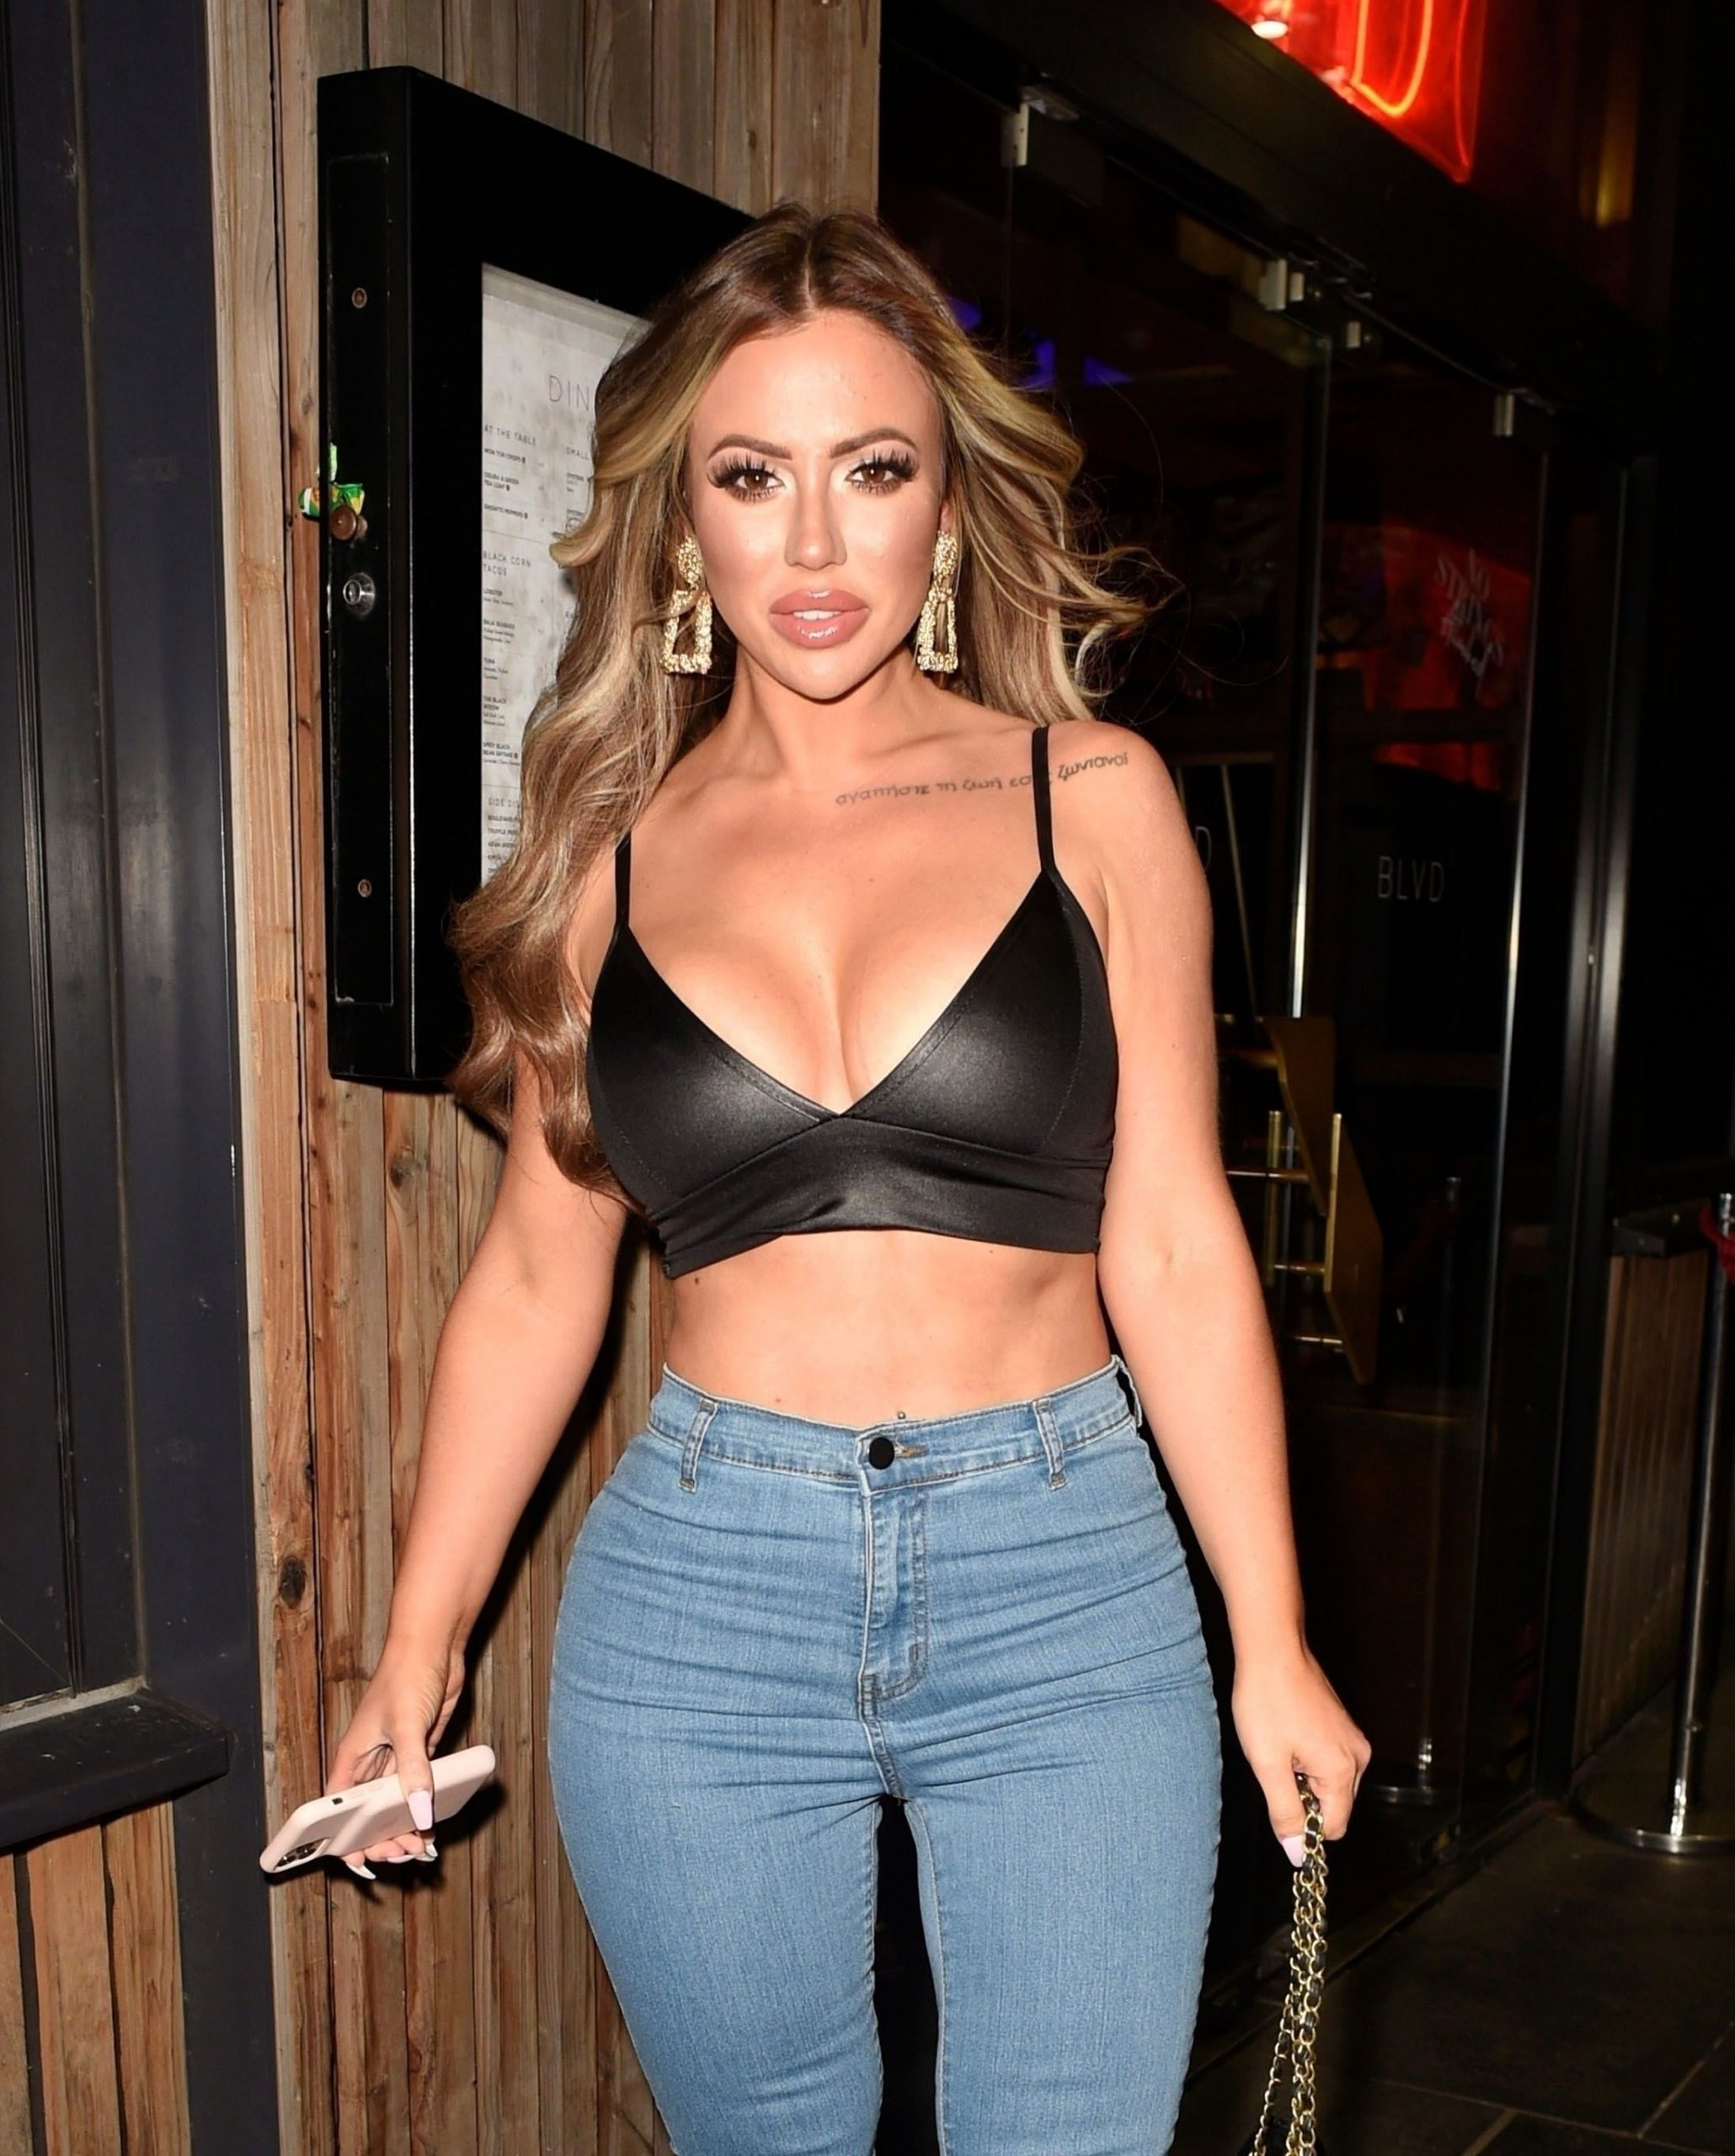 Holly Hagan Shows Off Her Sexy Figure On A Girls Night Out 0035